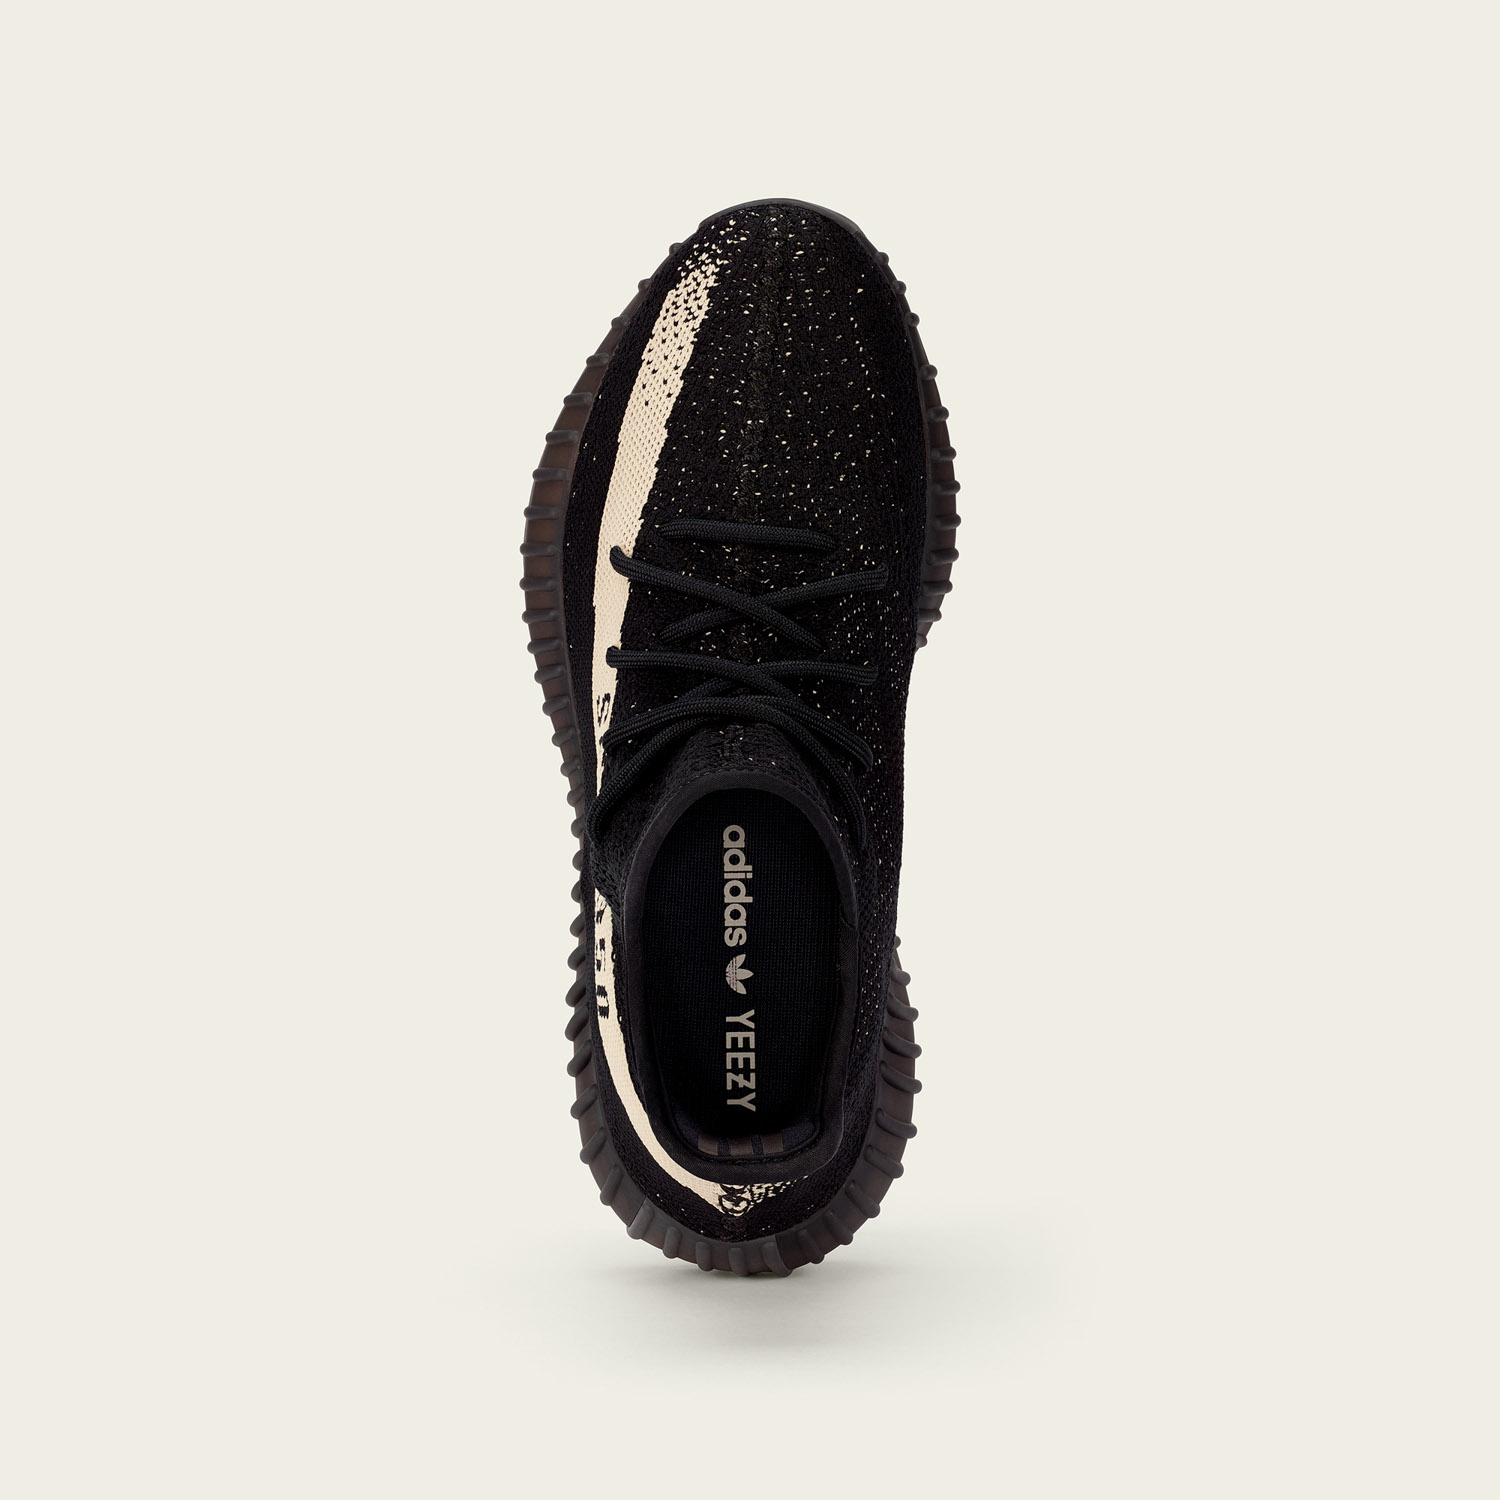 adidas Yeezy Boost 350 Black White 3